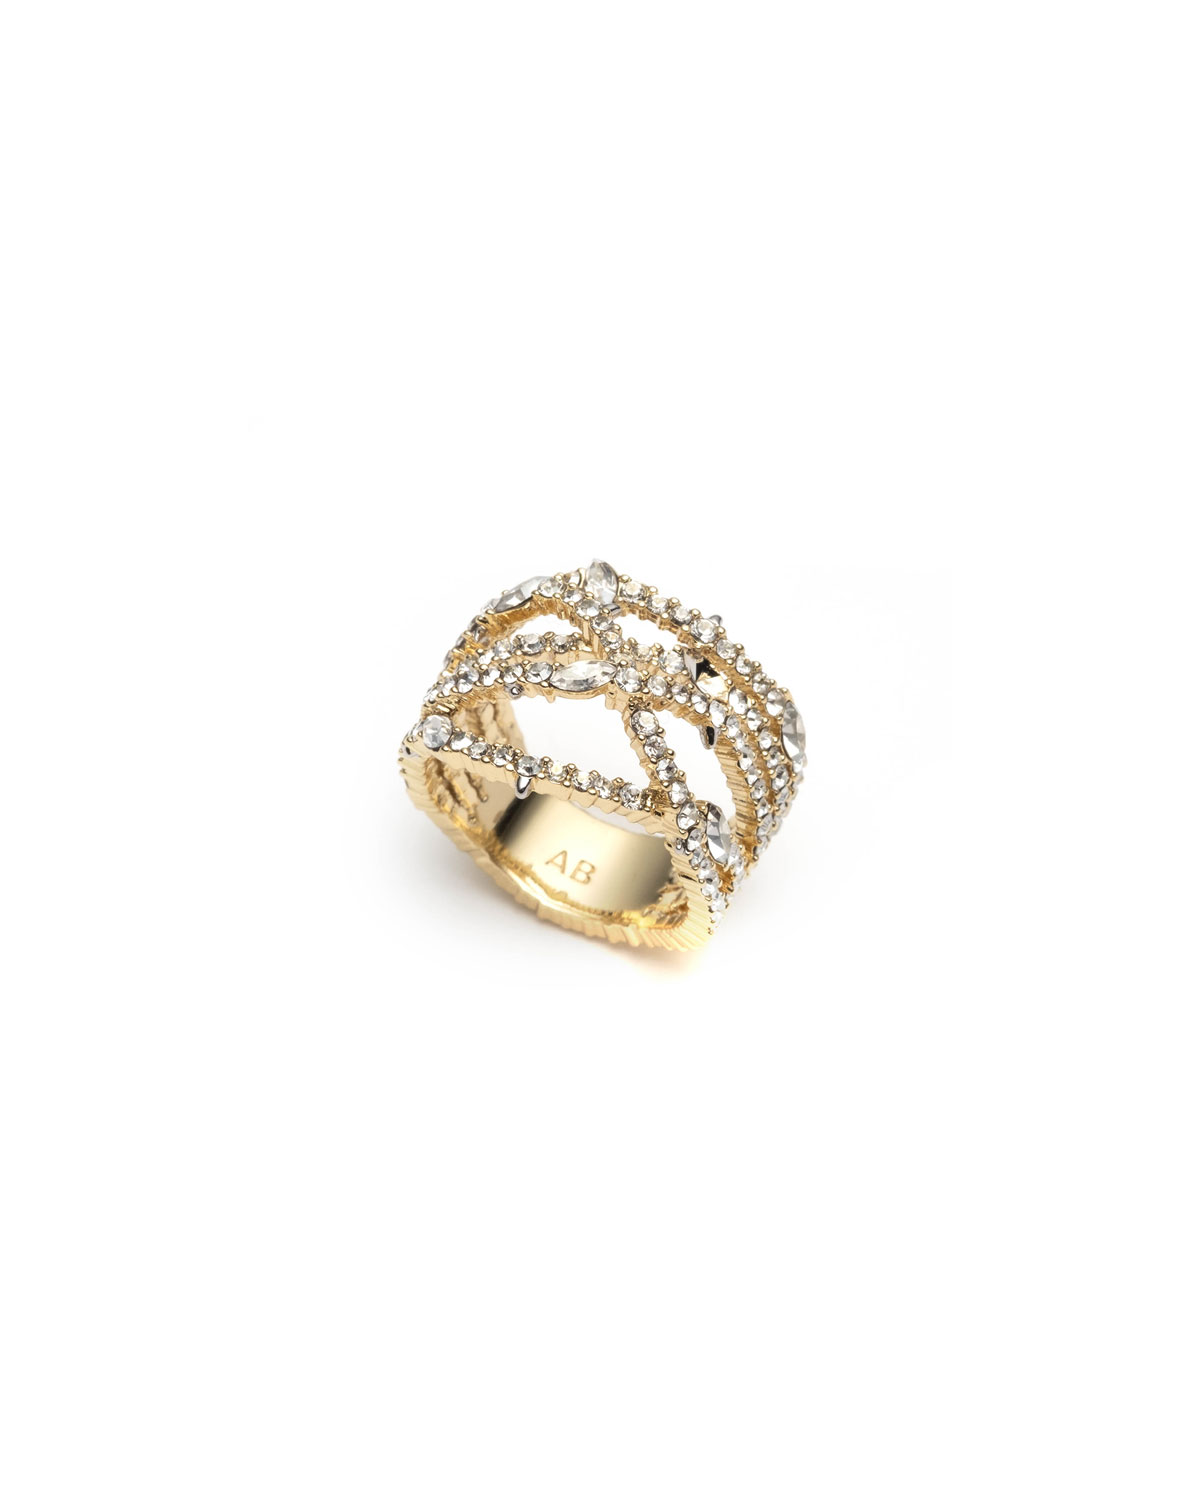 Alexis Bittar Pave Orbiting Ring, Size 7